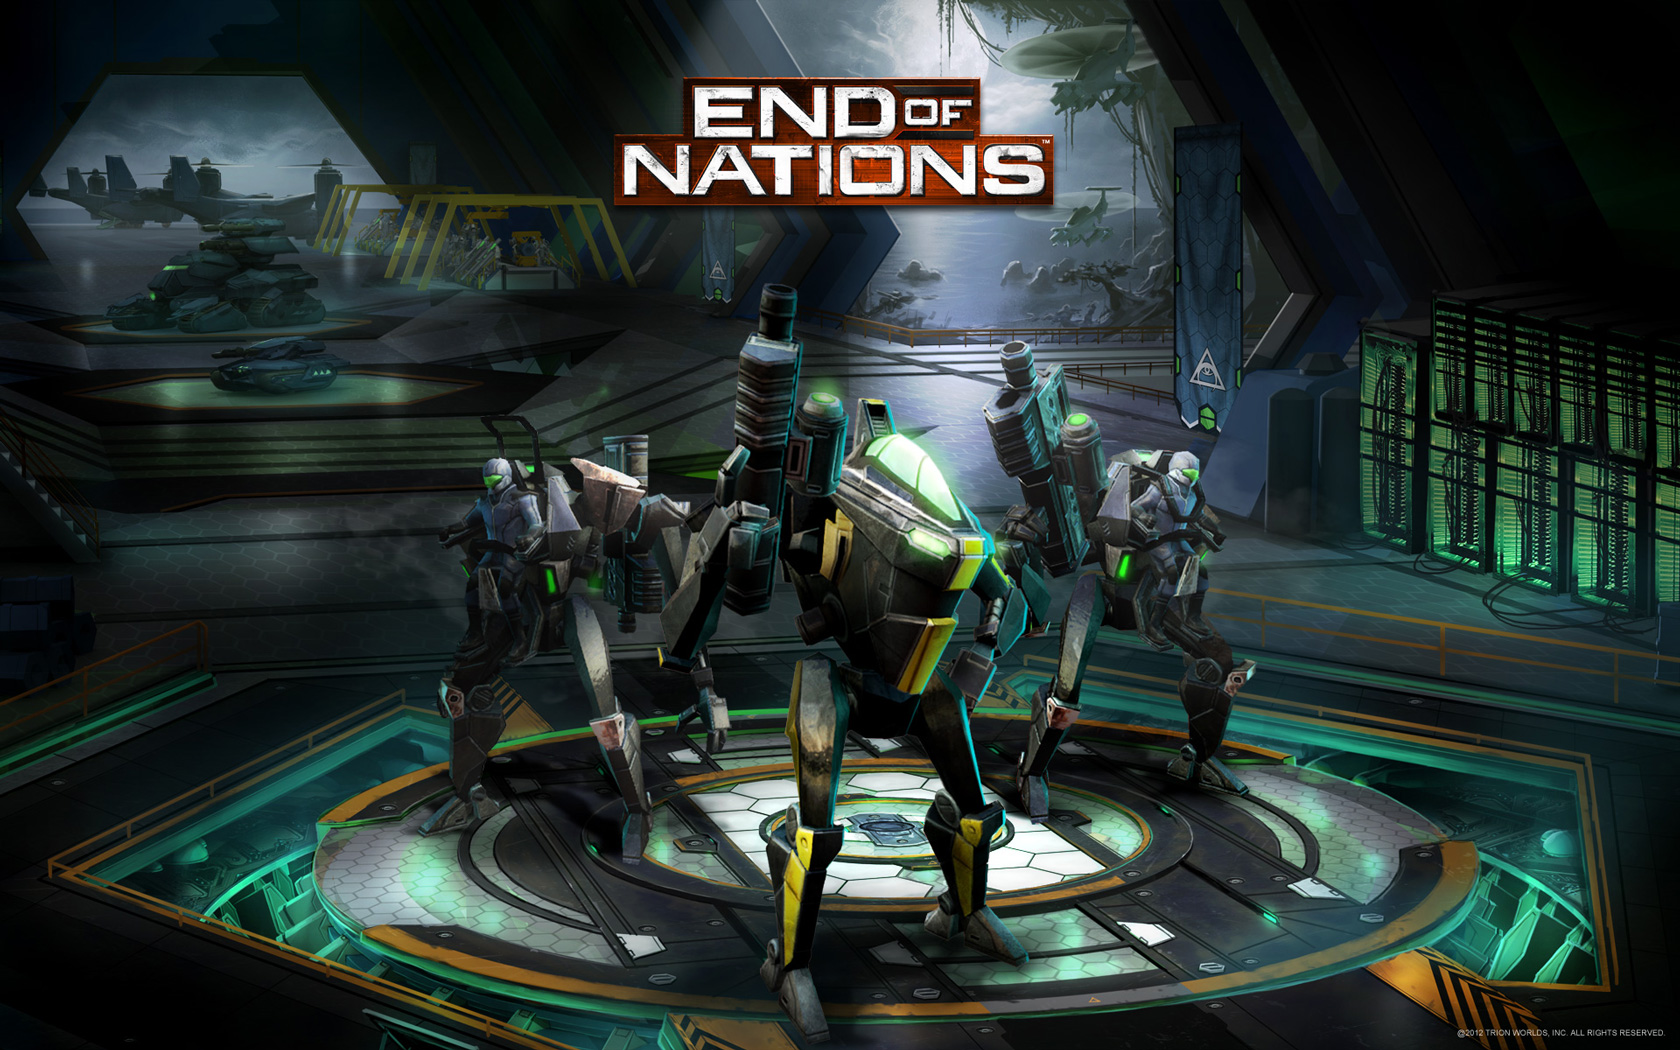 Free End of Nations Wallpaper in 1680x1050